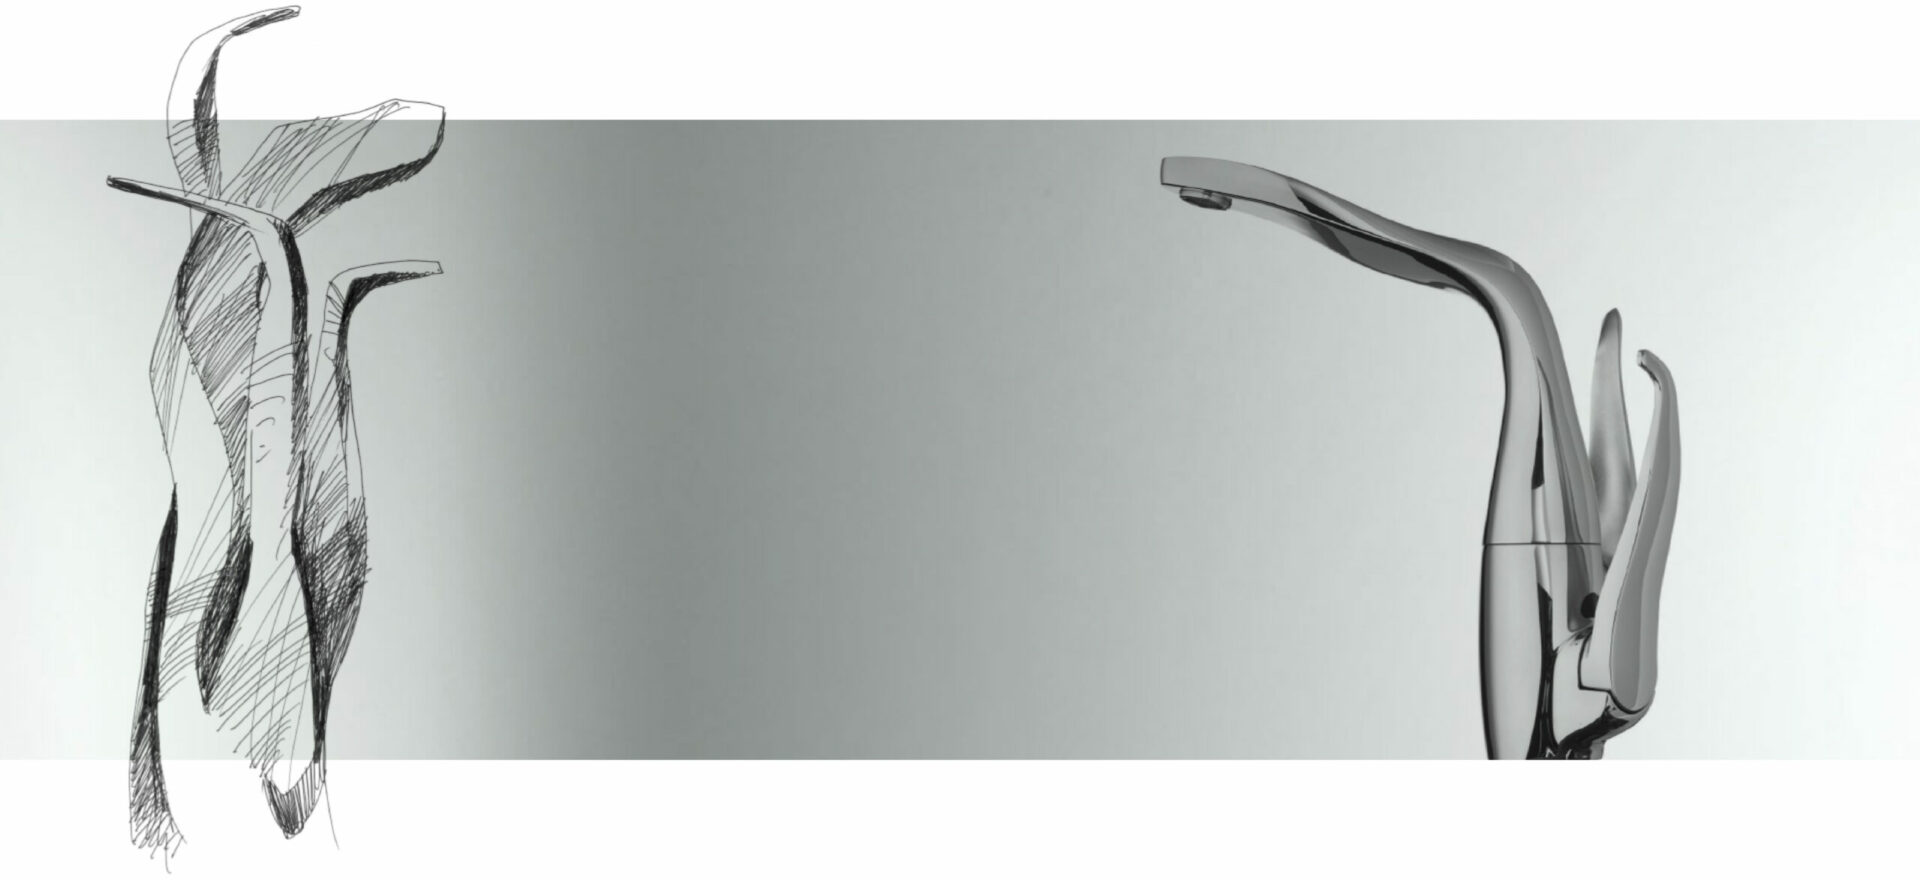 Art drawing of Swan kitchen faucet with black ink on paper. On the right side of the image a side picture shows the result of the design into the object. The design was awarded the Good Design Award in 2017.